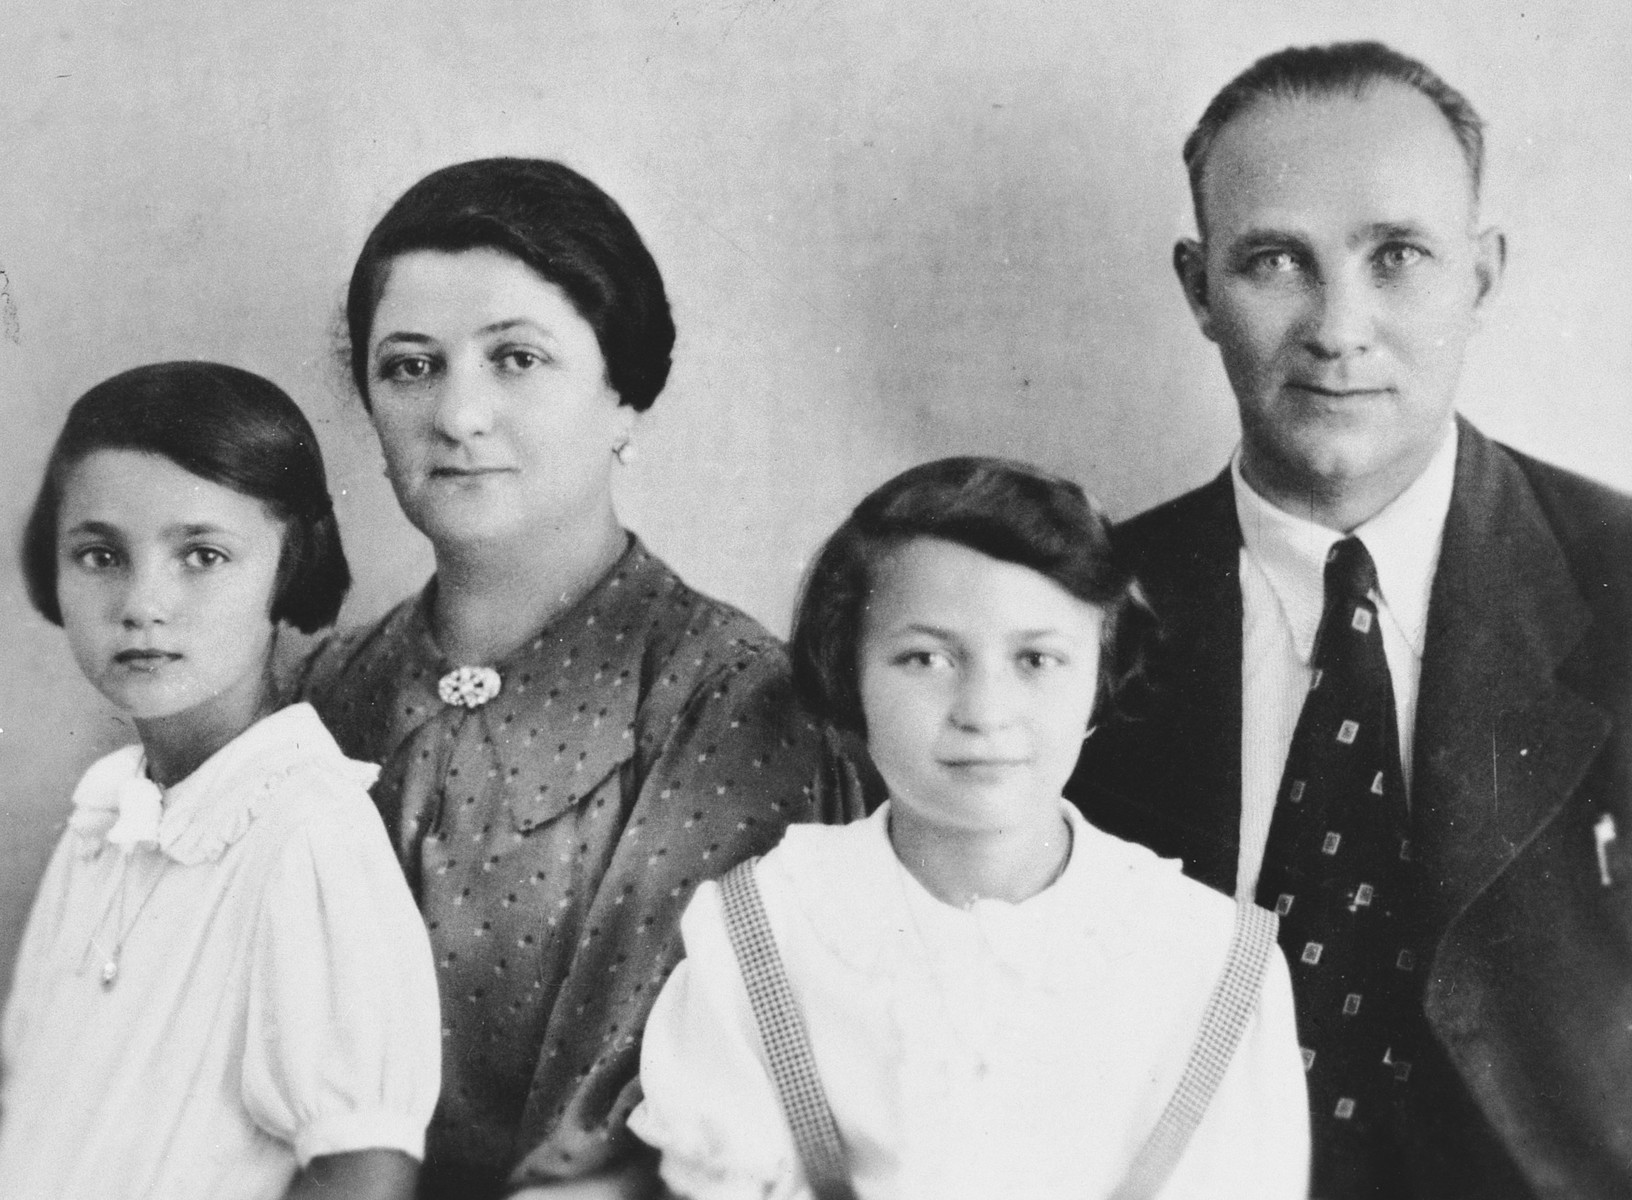 Studio portrait of the Eisenstab family.  From left to right are Elfi, Jetty, Lucie and Eisig Eisenstab.